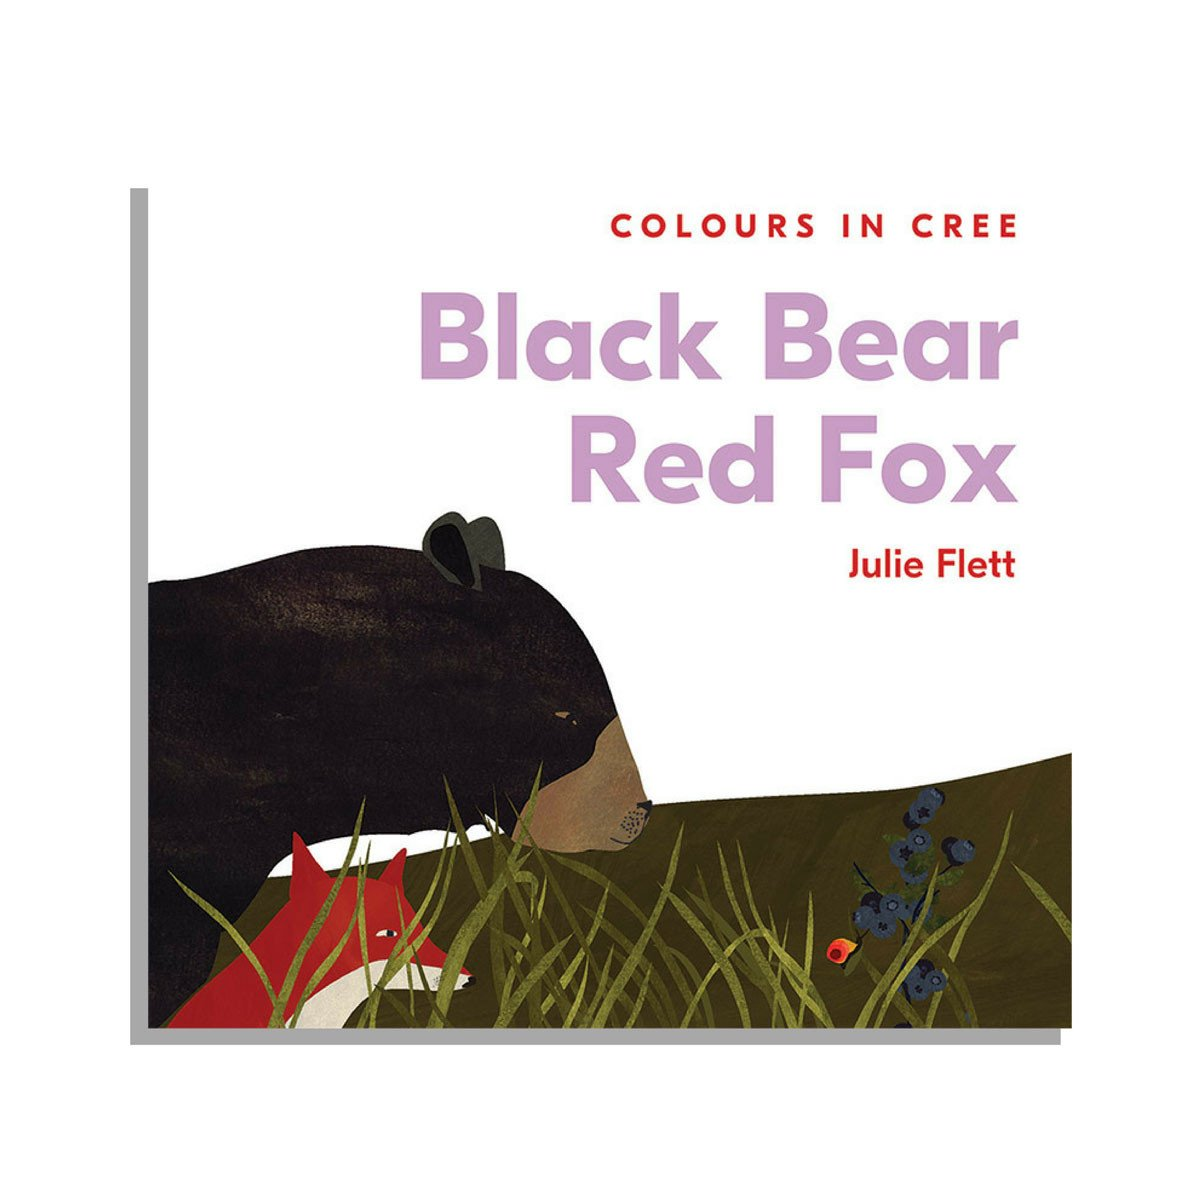 Black Bear Red Fox by Julie Flett